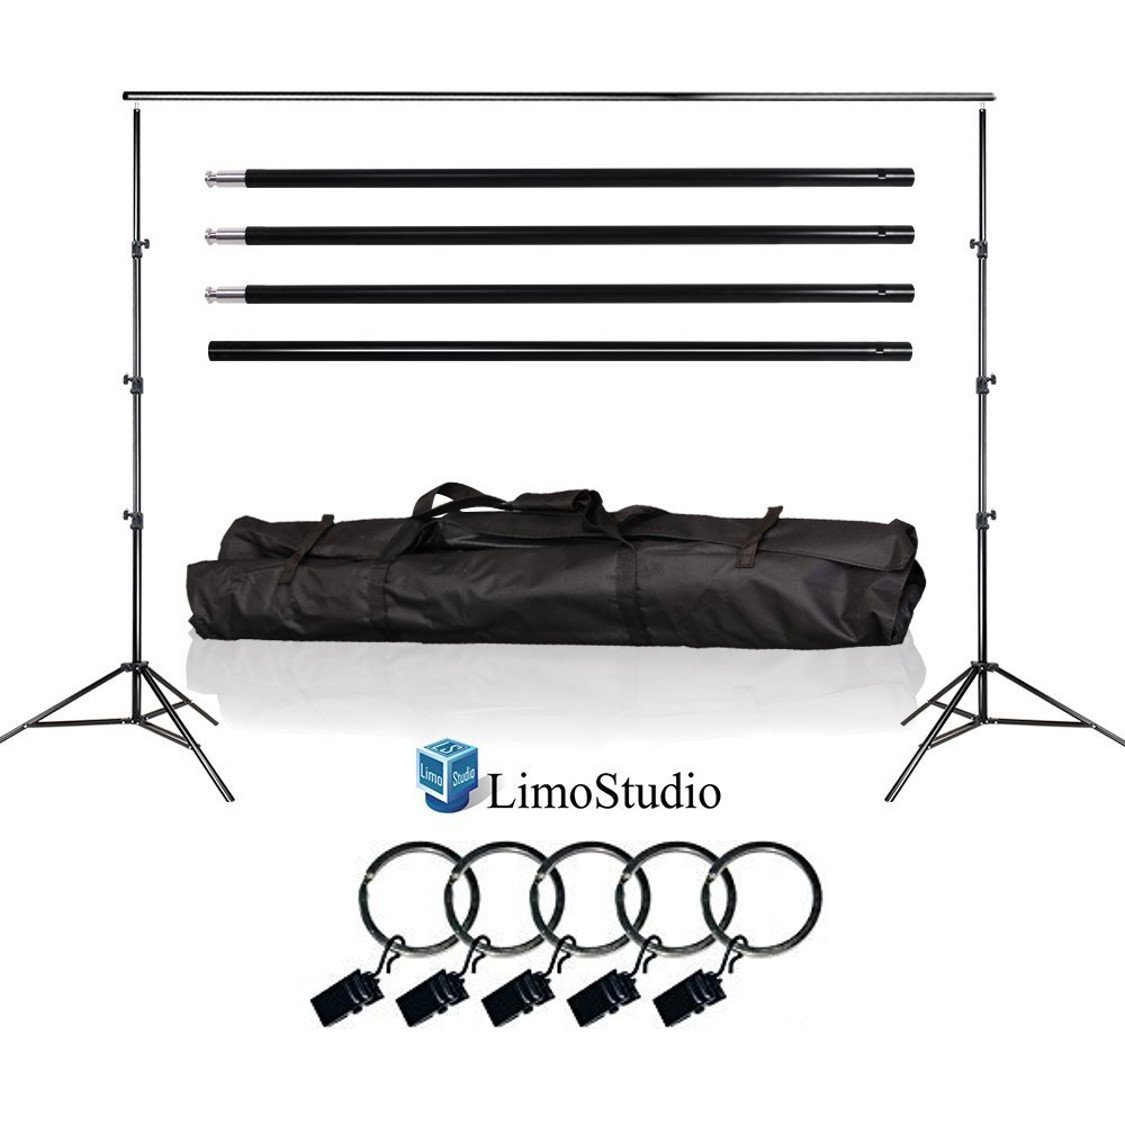 LimoStudio Photo Video Studio 10Ft Adjustable Muslin Background Backdrop Support System Stand, 5x Backdrop Helper Holders Kit with Bag, AGG1395 by LimoStudio